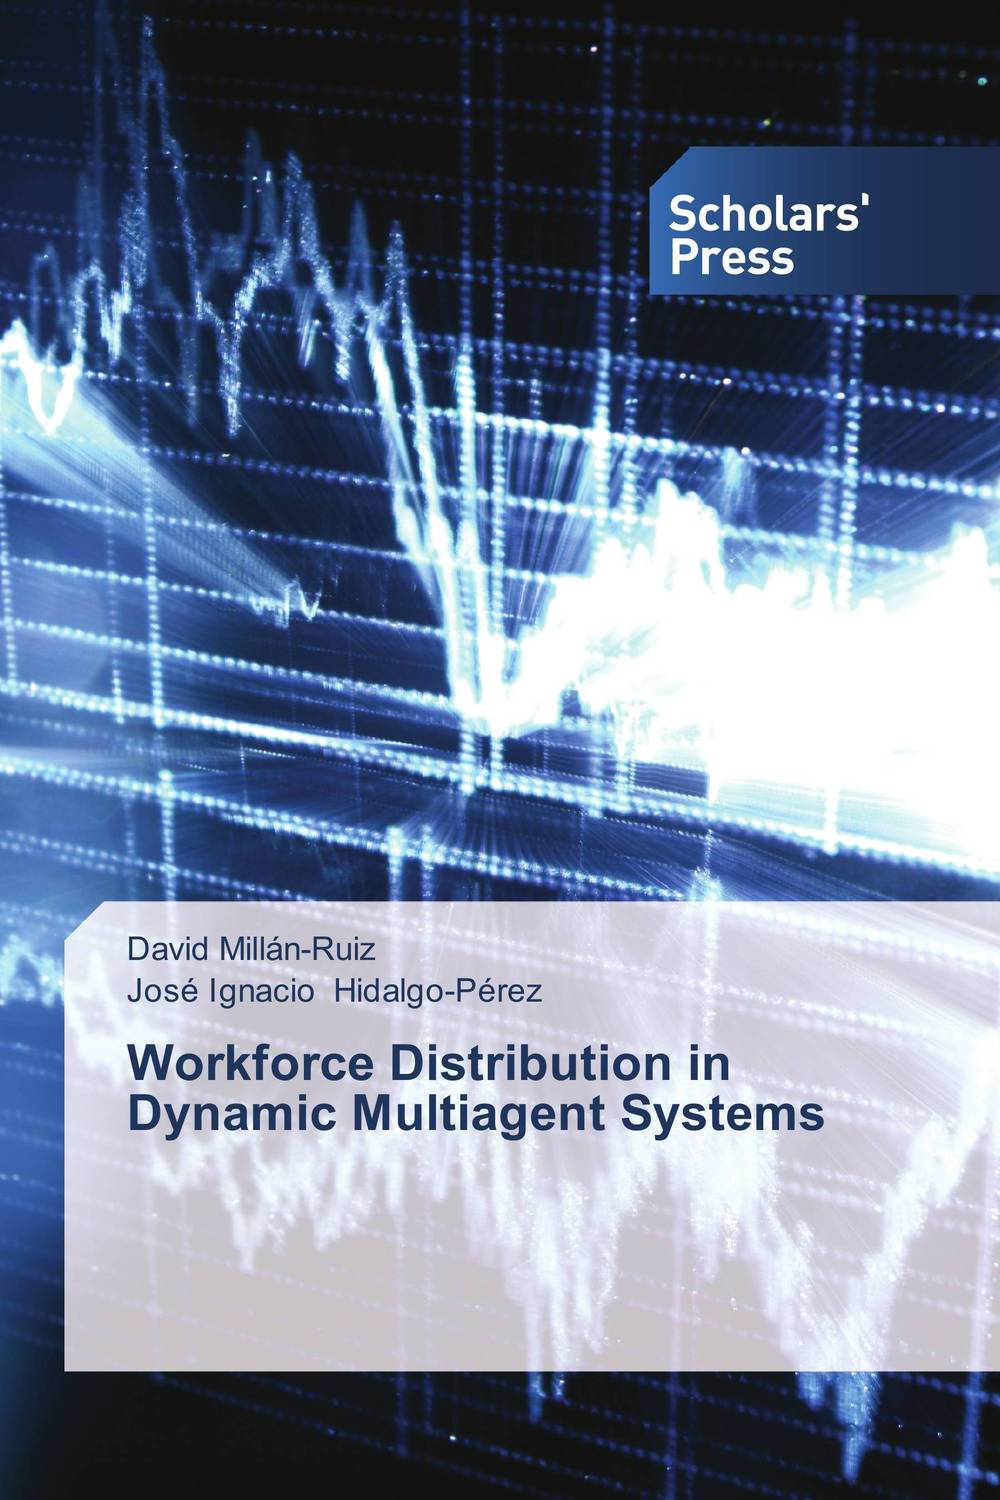 Workforce Distribution in Dynamic Multiagent Systems peter stone layered learning in multiagent systems – a winning approach to robotic soccer